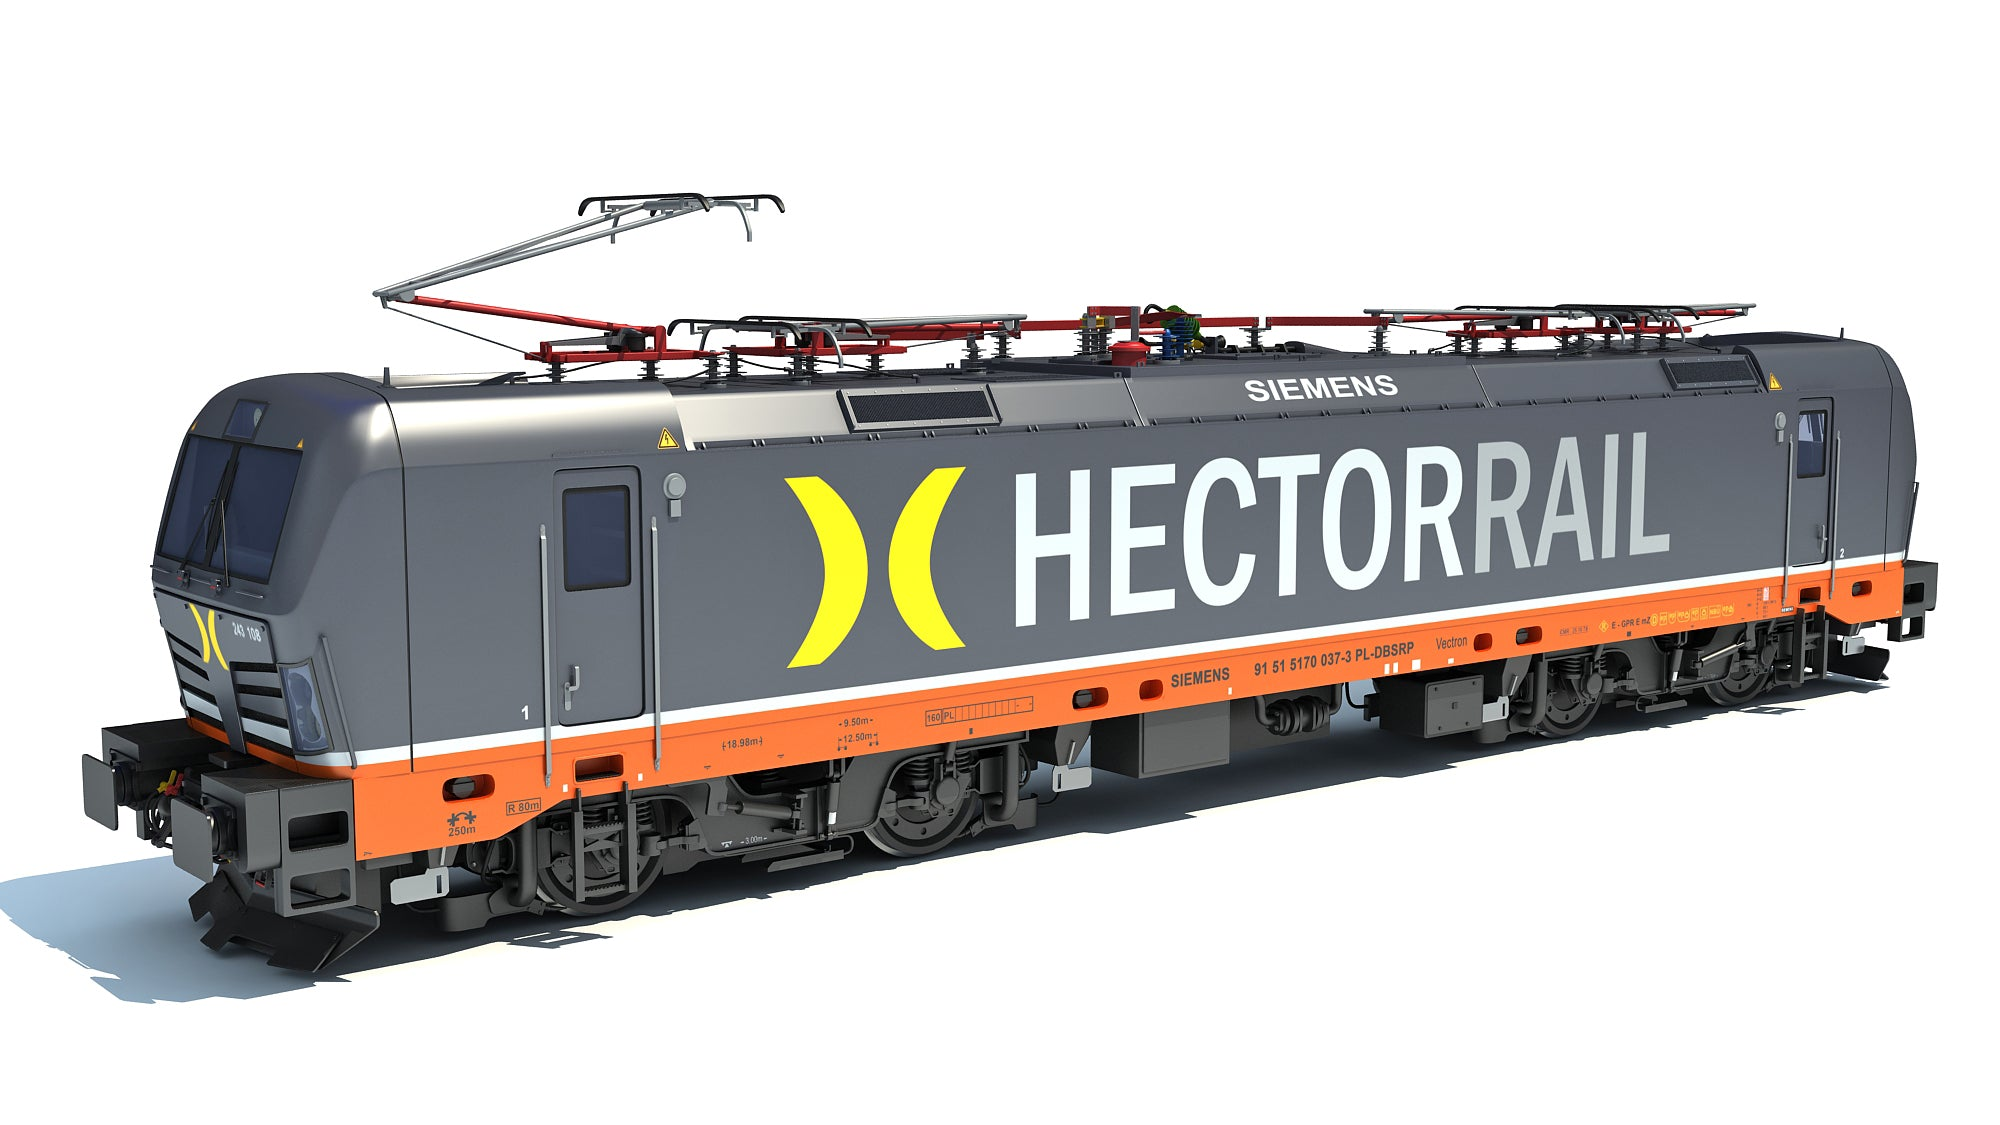 Hector Rail Siemens Vectron Locomotive